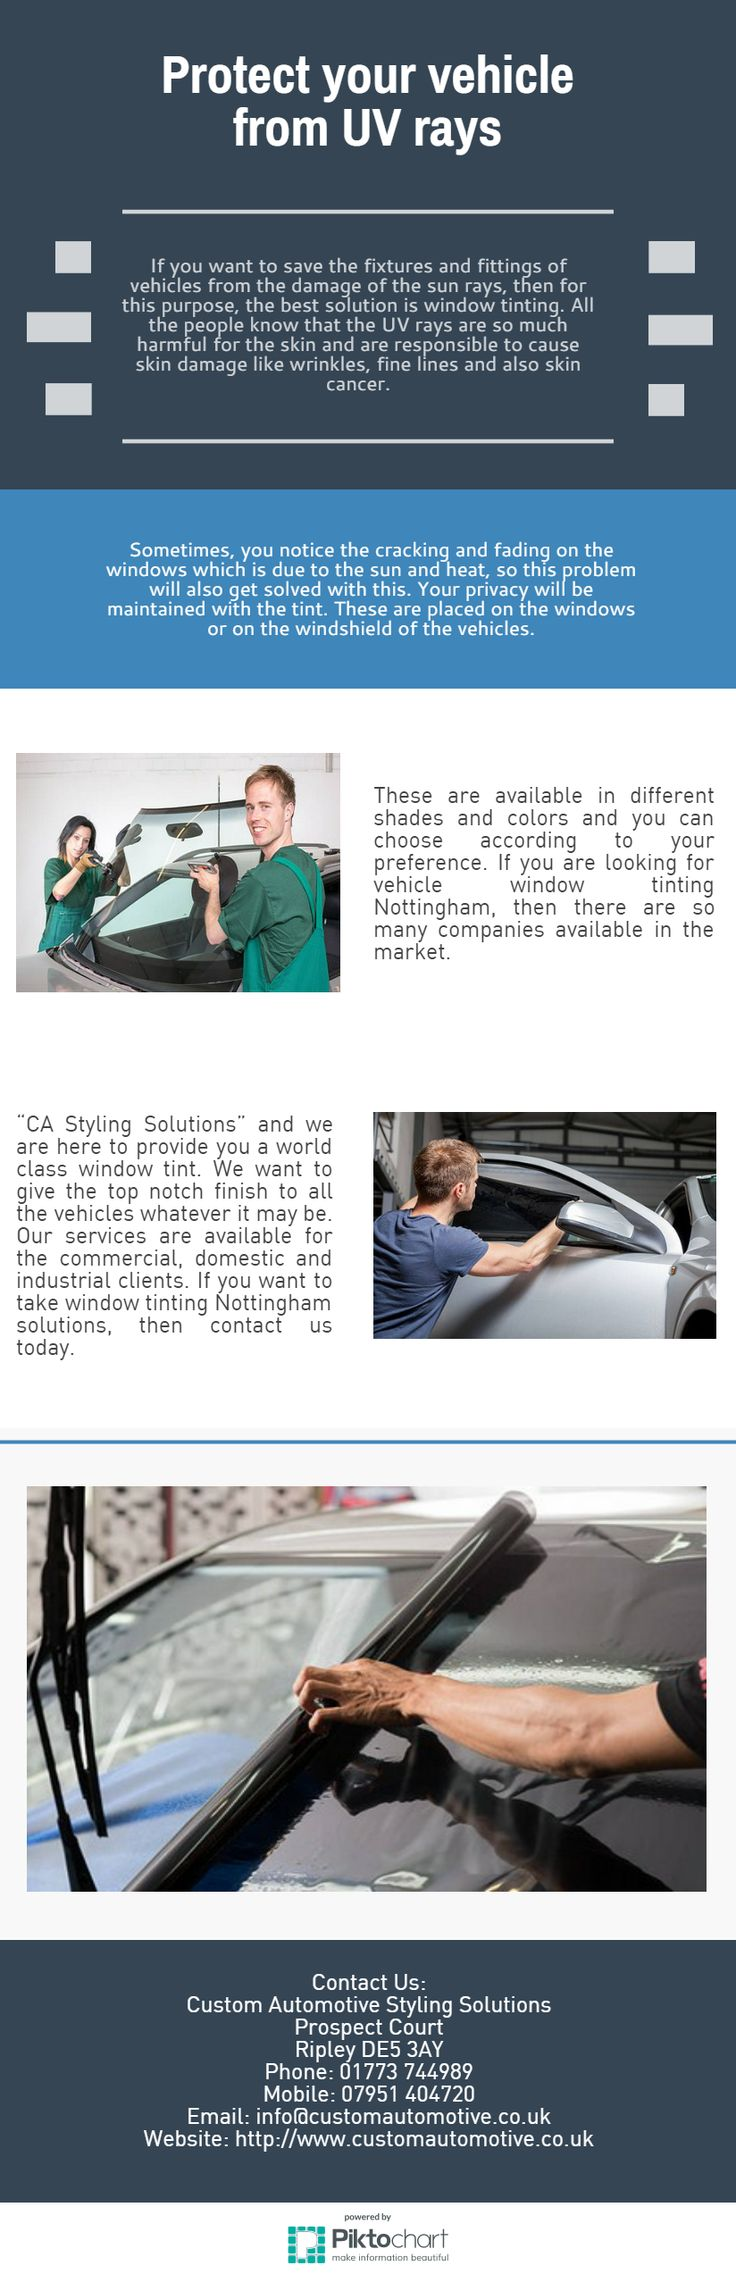 If you are looking for vehicle window tinting Nottingham, then there are so many companies available in the market.